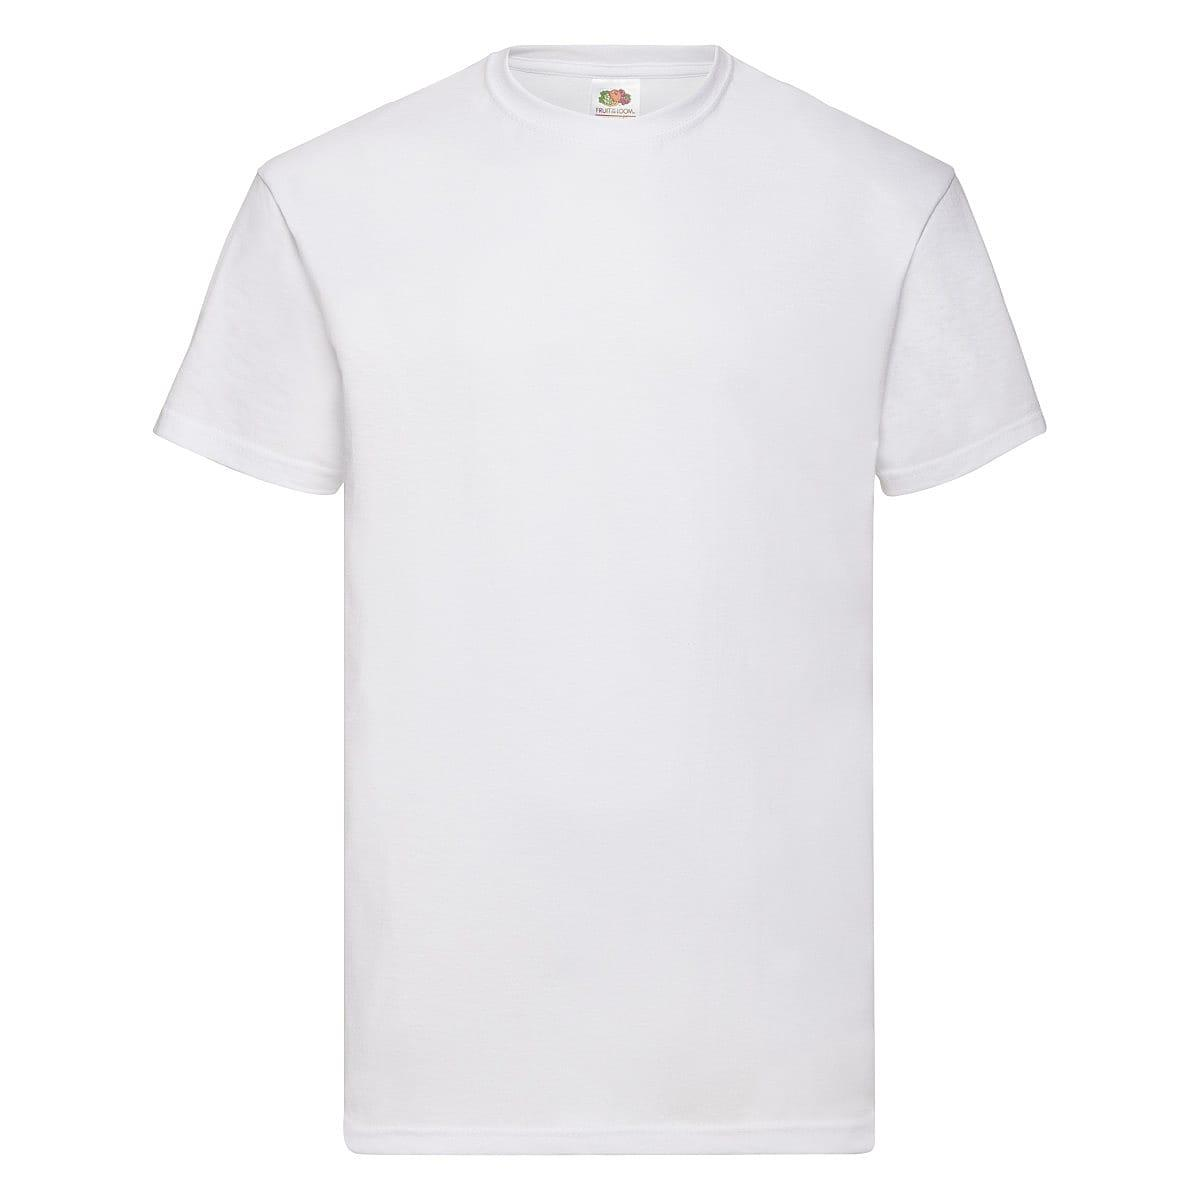 Fruit Of The Loom Valueweight T-Shirt in White (Product Code: 61036)